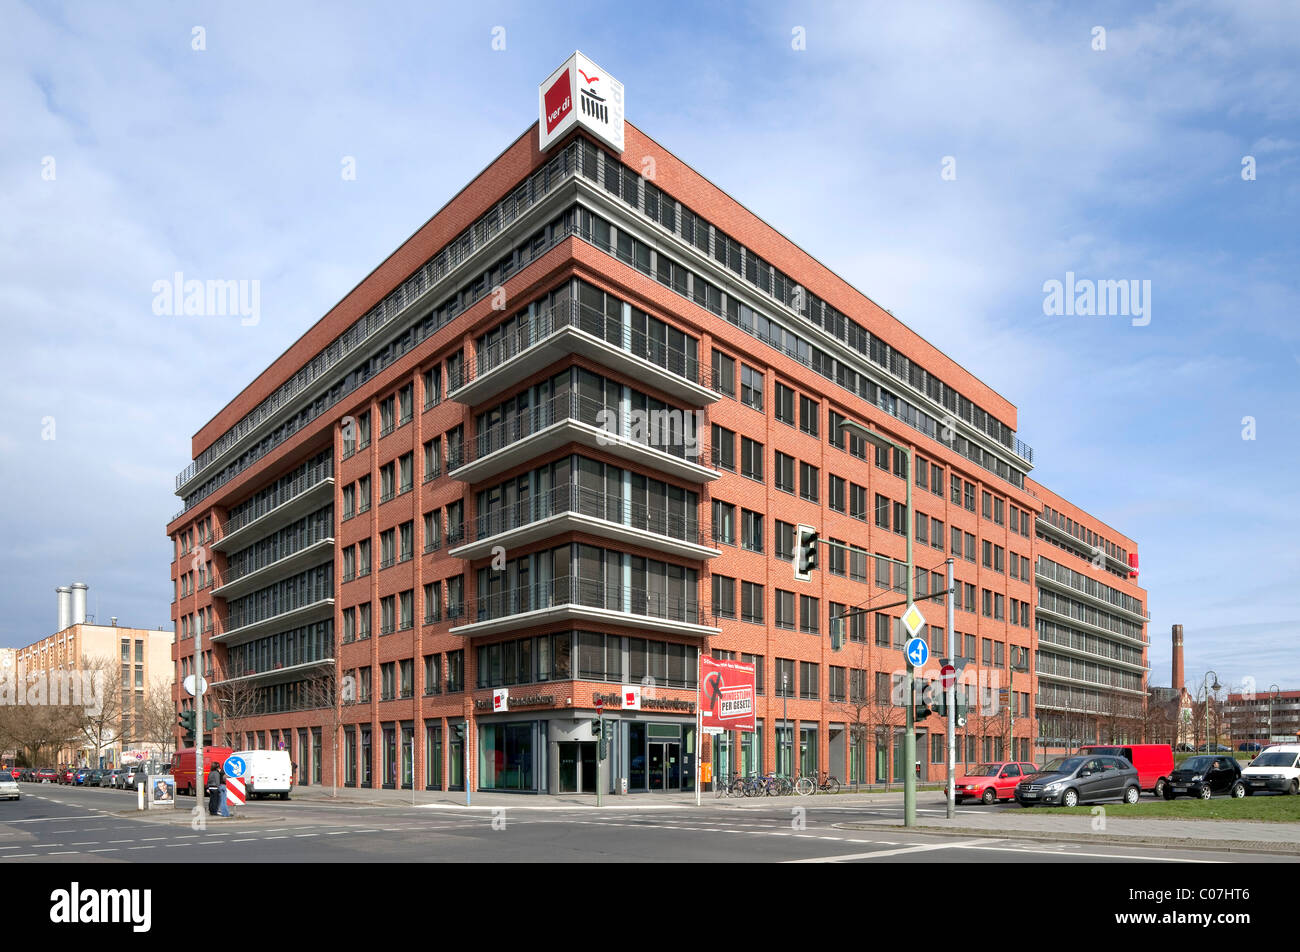 Ver.di Trade Union headquarters, Kreuzberg, Berlin, Germany, Europe - Stock Image